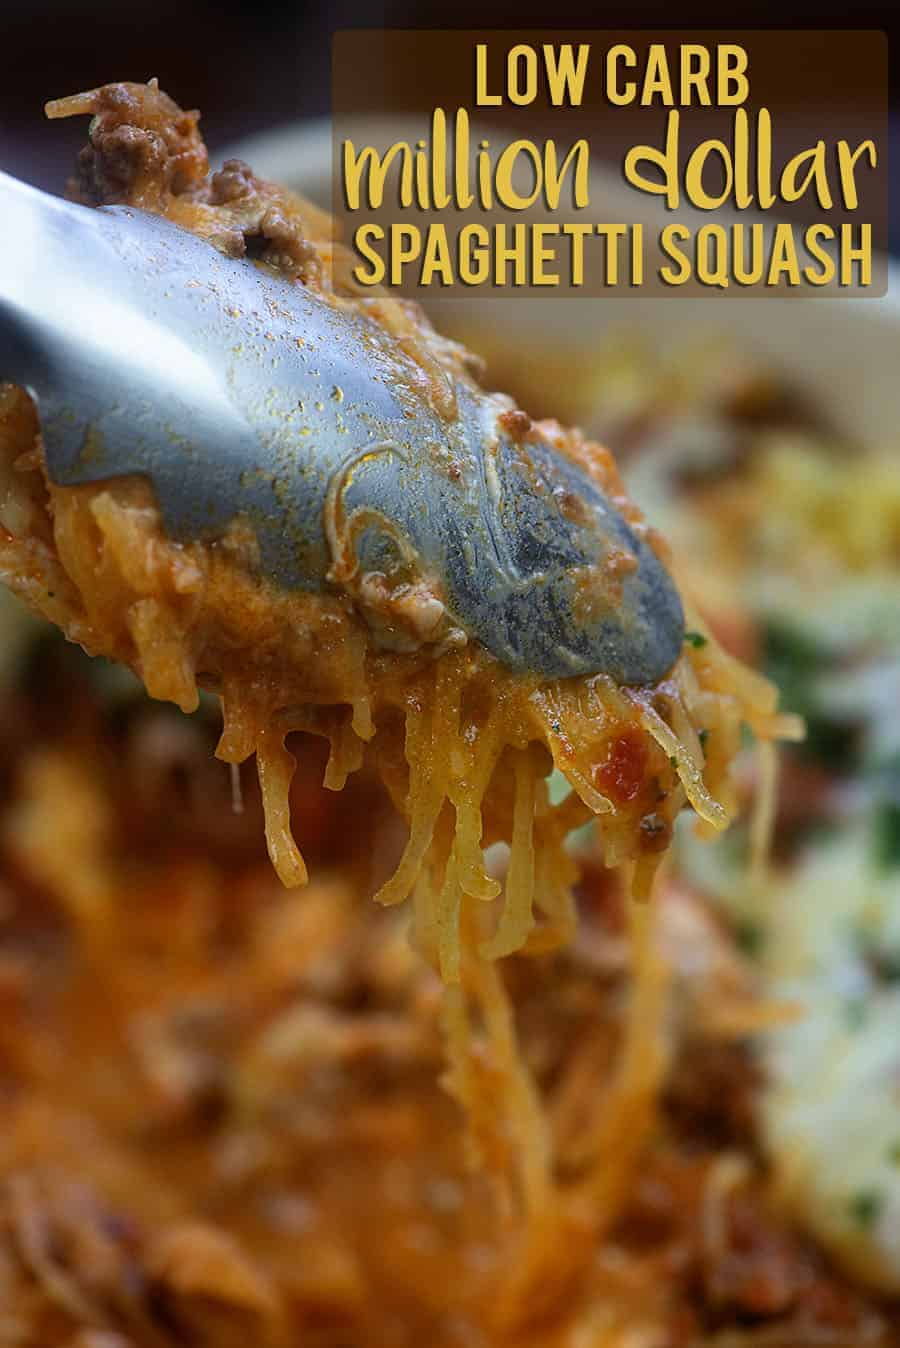 Tongs scooping up some spaghetti squash